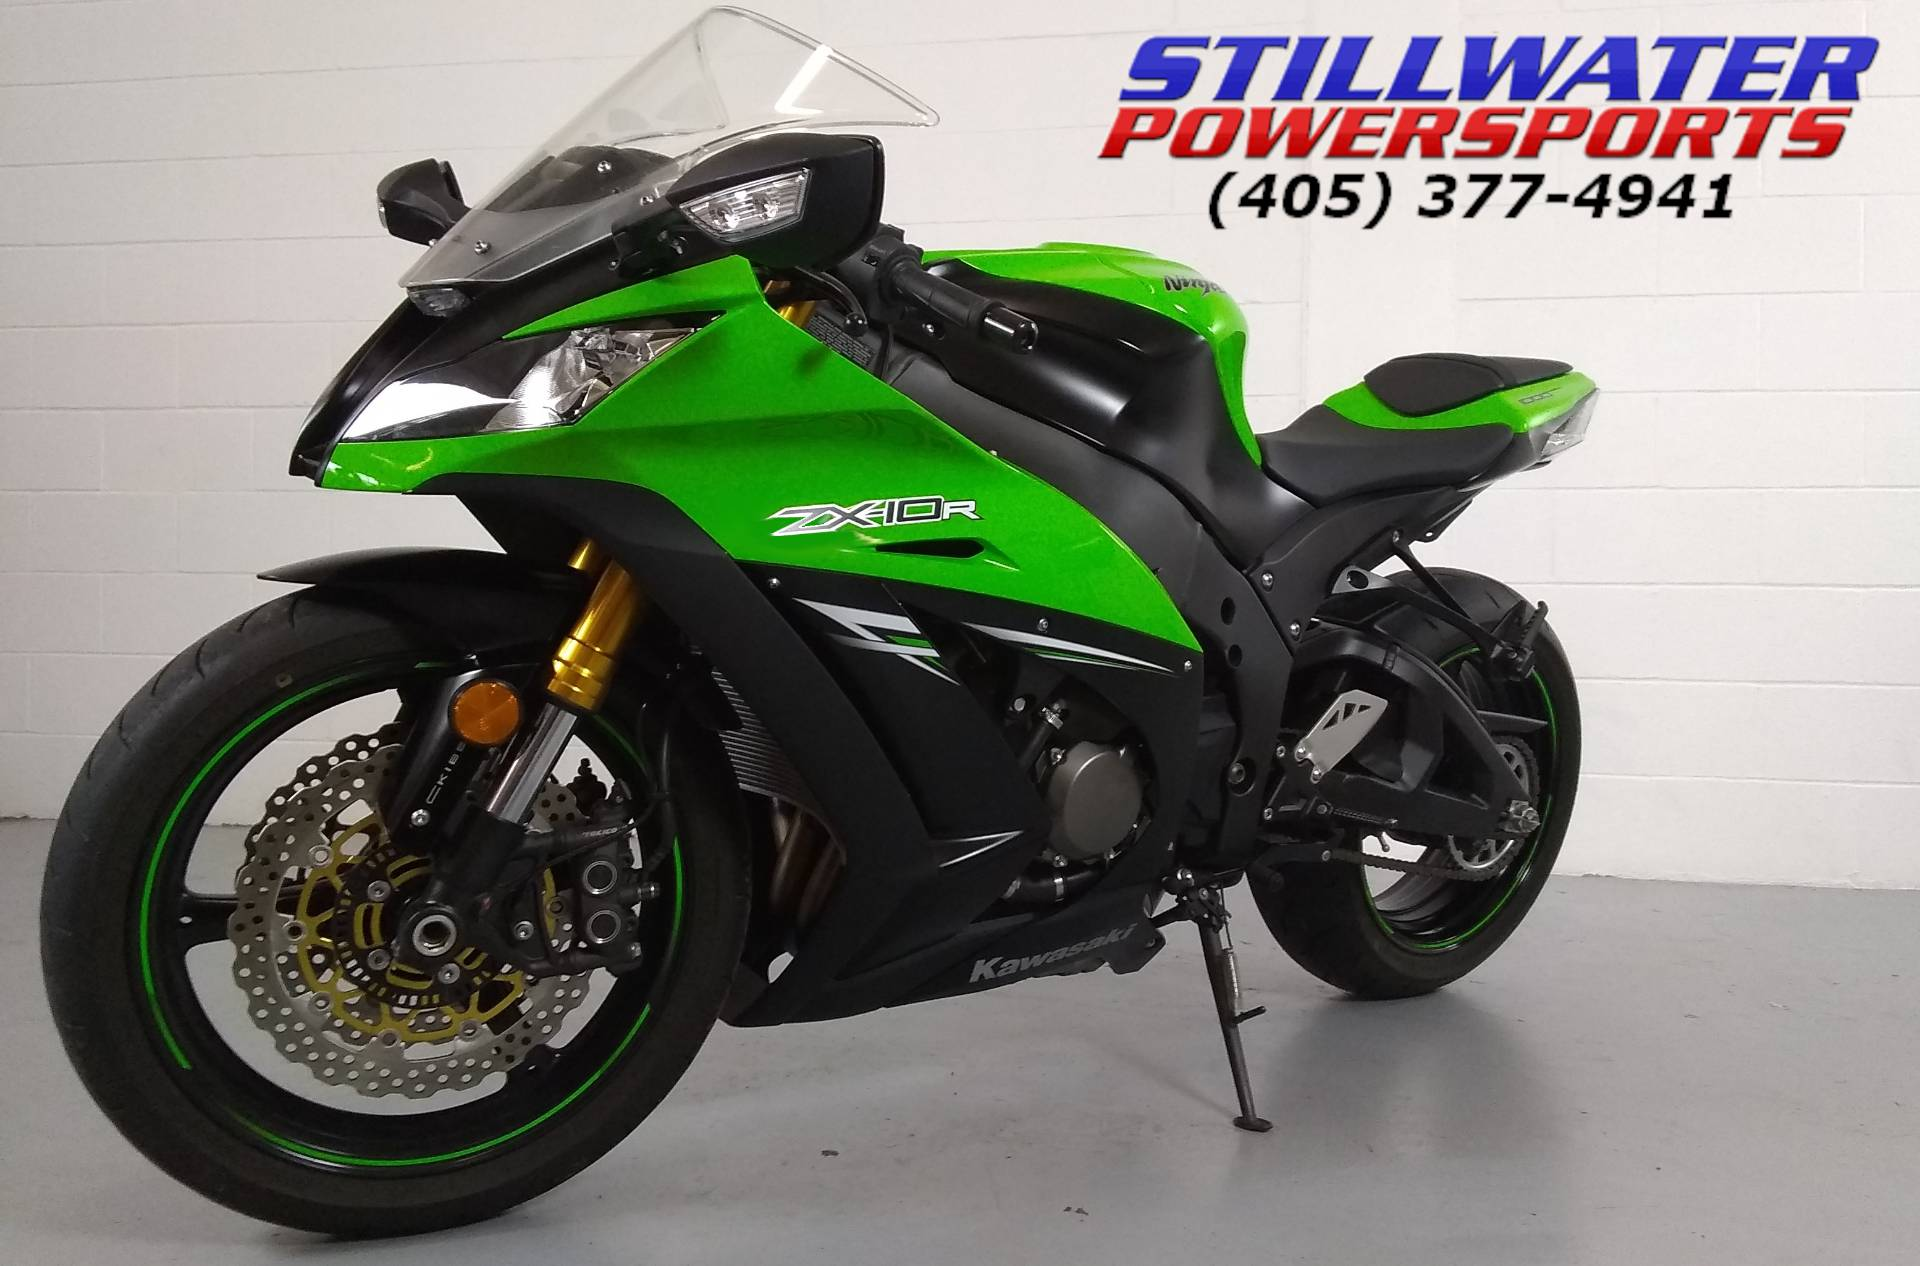 2014 Kawasaki Ninja® ZX™-10R ABS in Stillwater, Oklahoma - Photo 6